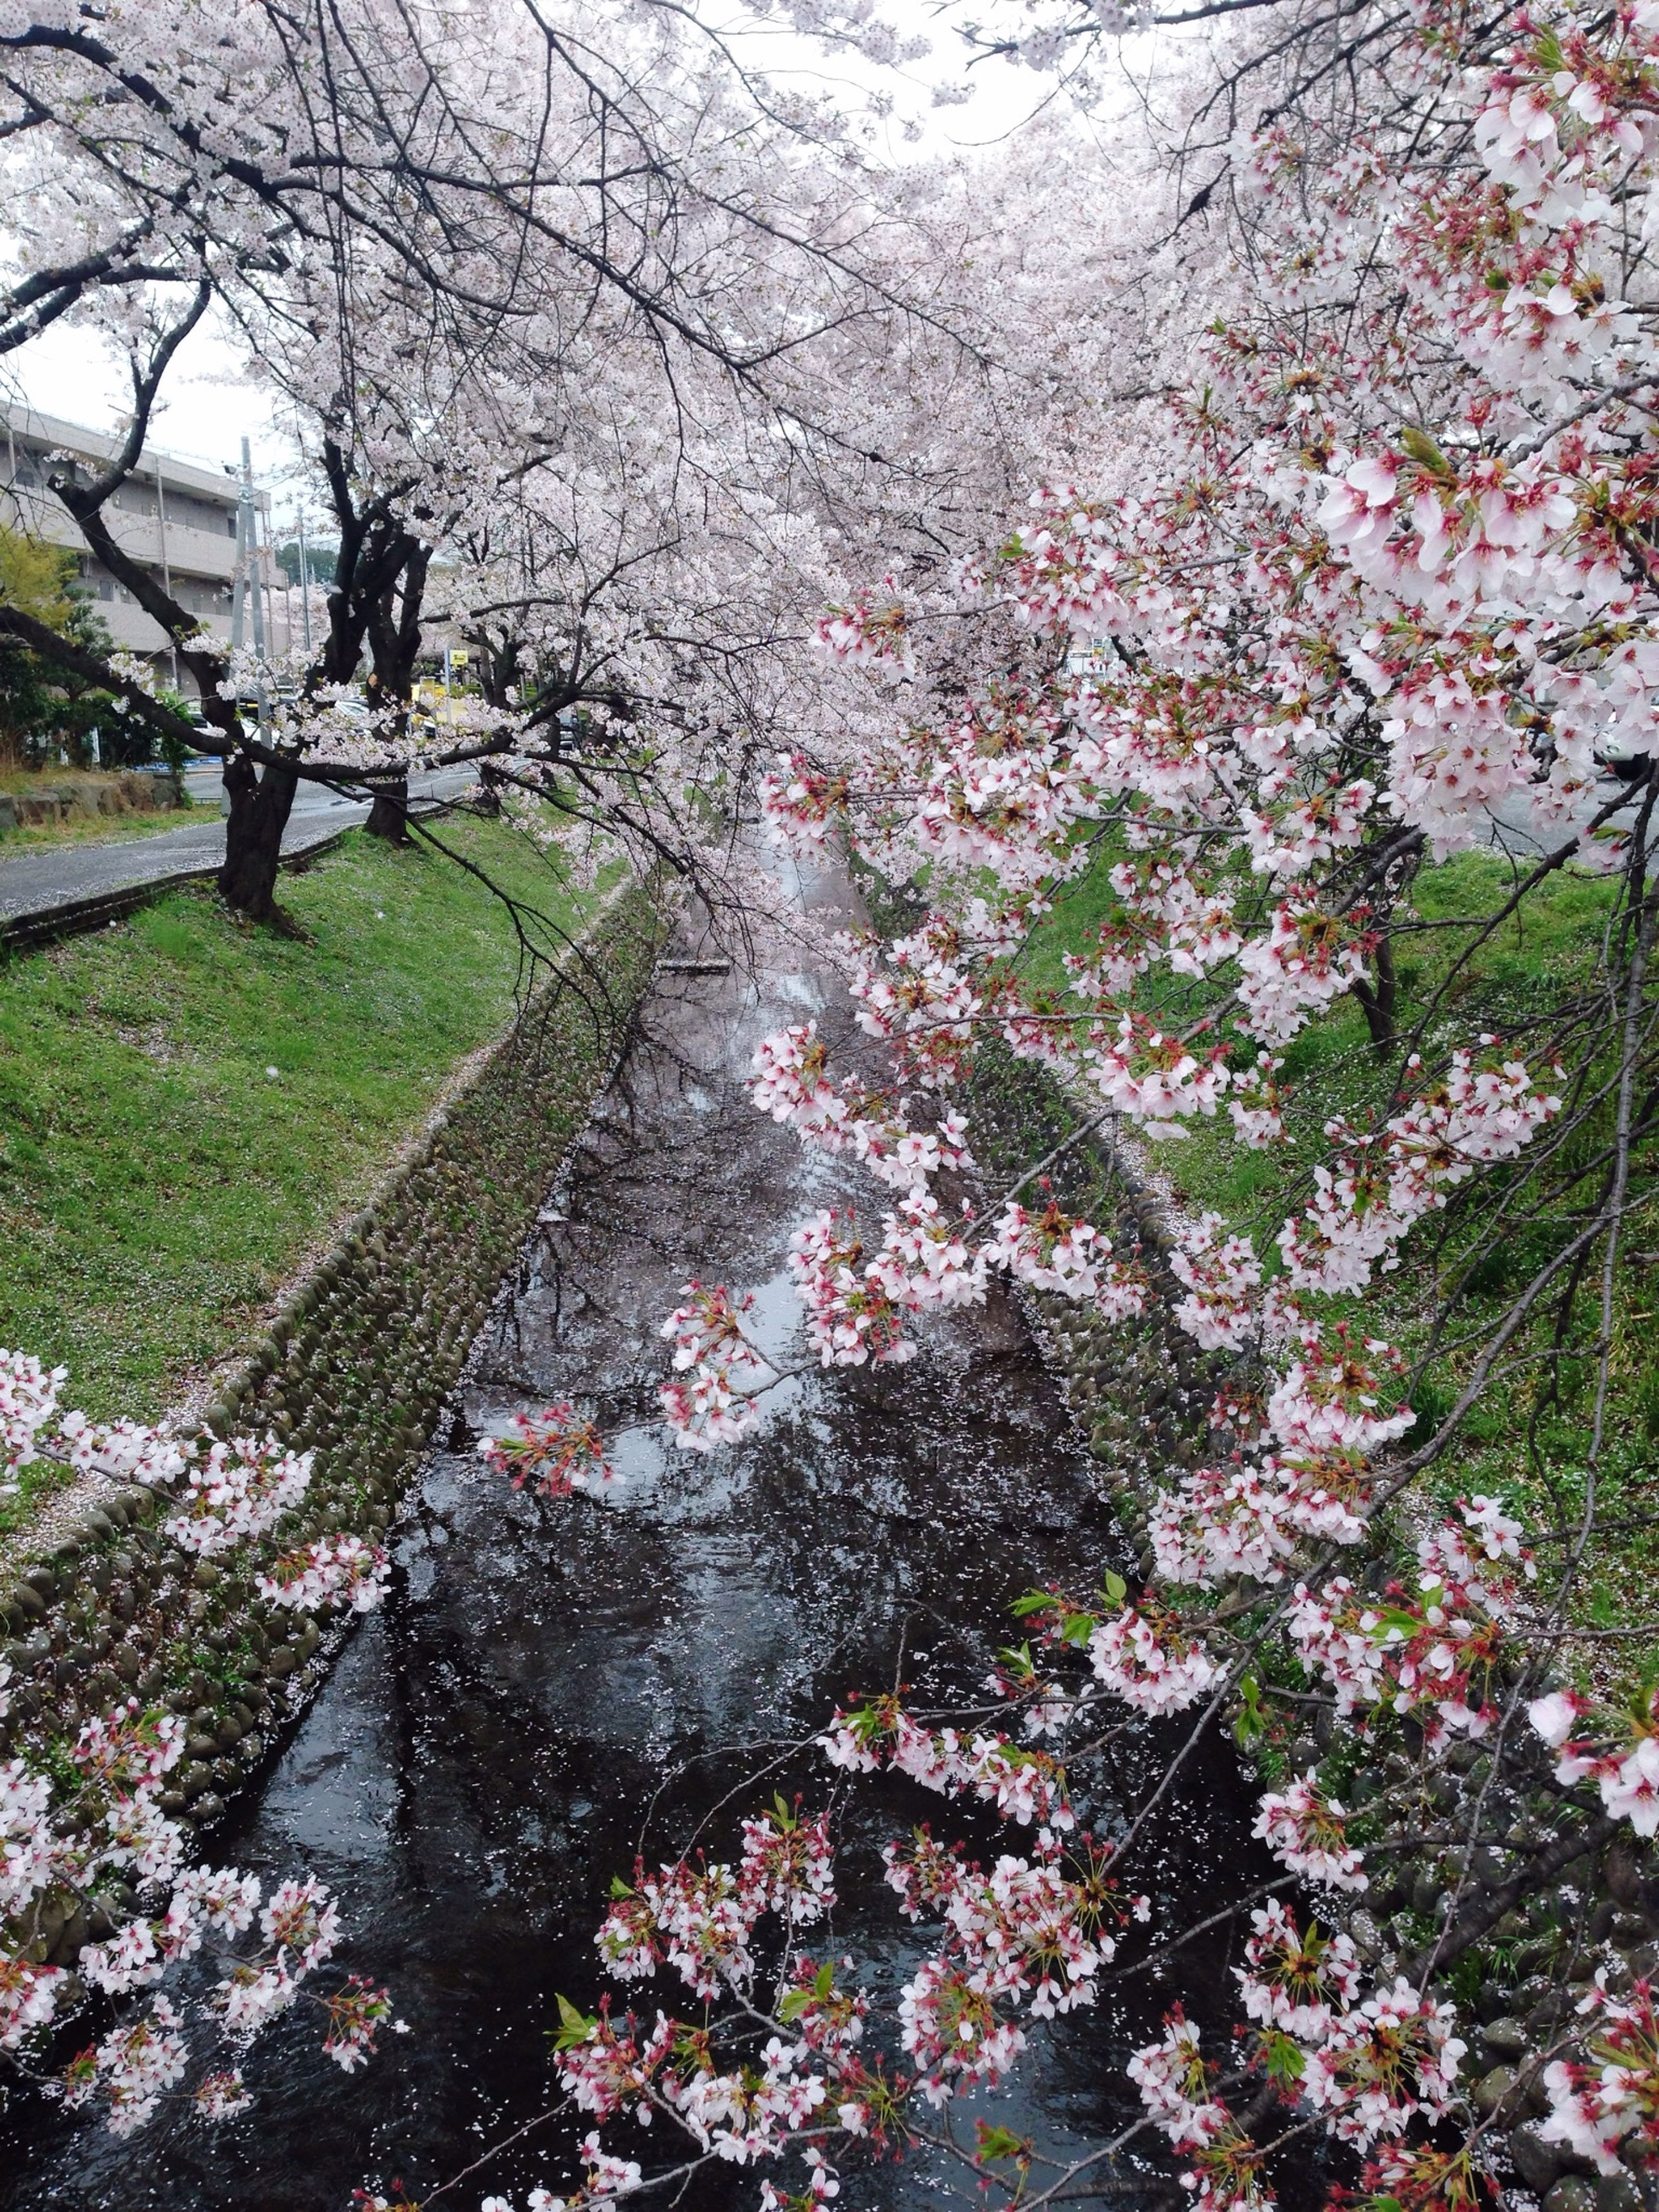 tree, flower, growth, branch, nature, building exterior, freshness, park - man made space, built structure, architecture, cherry blossom, beauty in nature, blossom, day, fragility, outdoors, plant, cherry tree, footpath, springtime